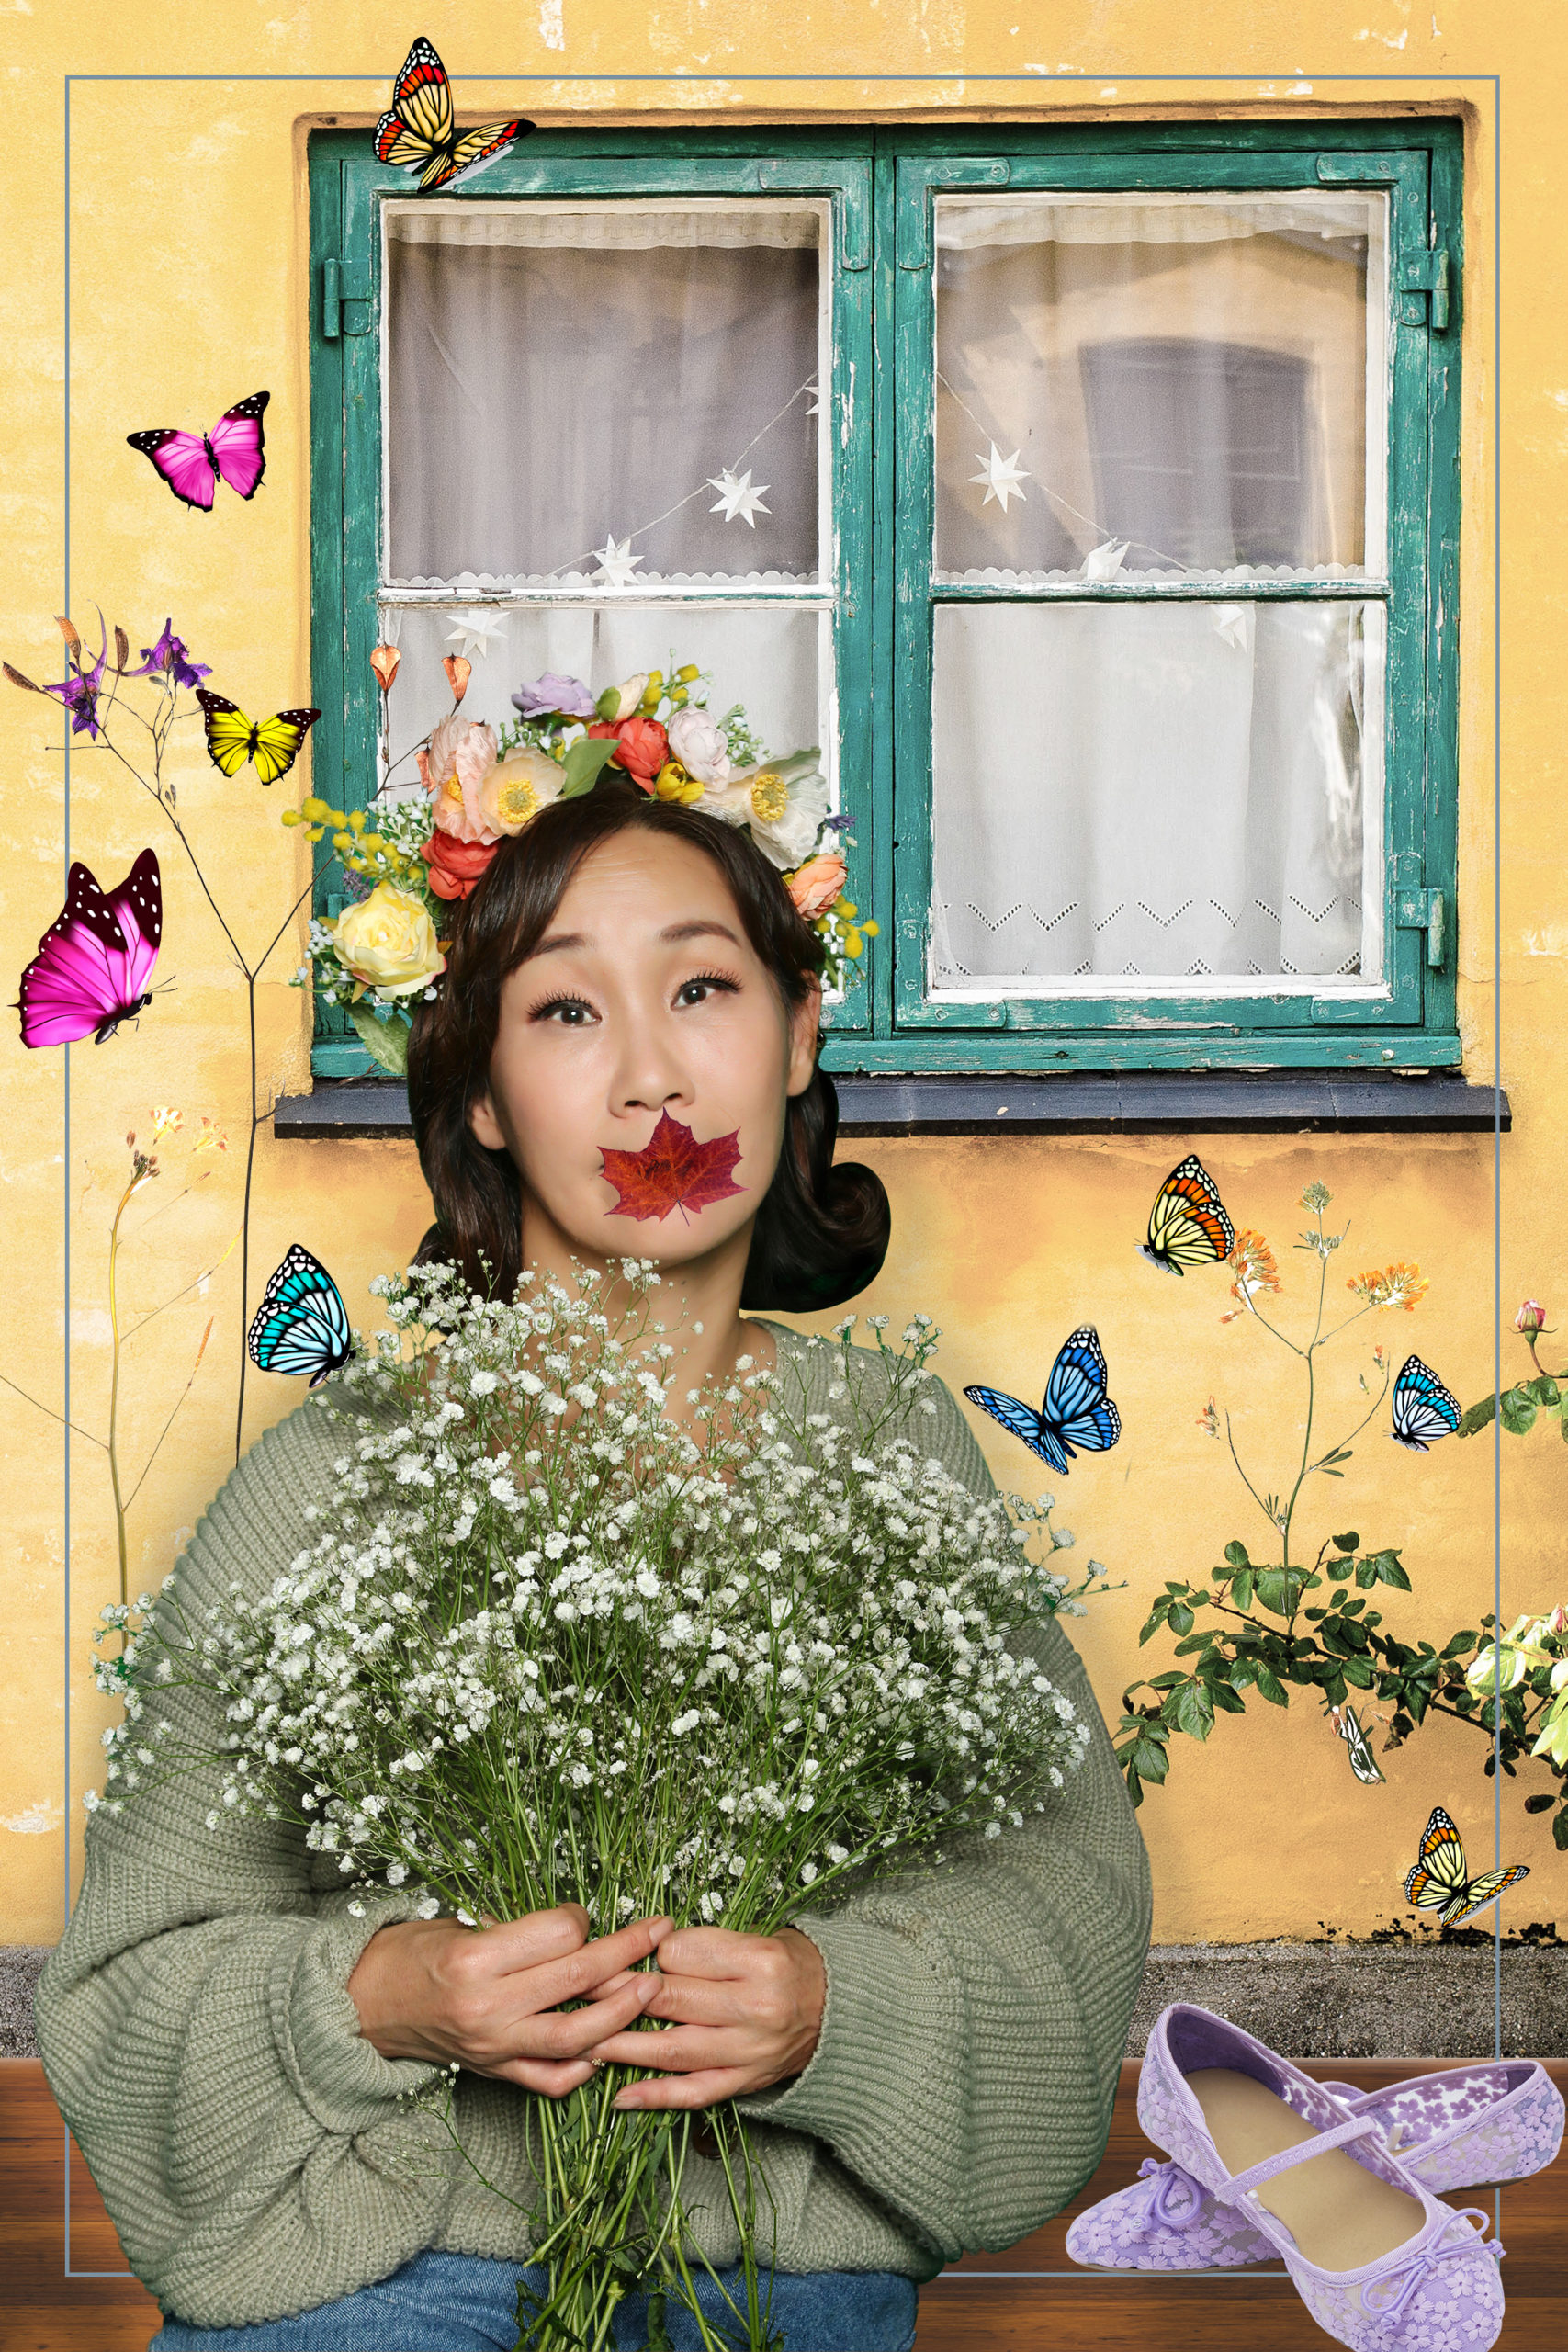 Portait of Sujin holding a bunch of flowers surrounded by flowers and butterflies